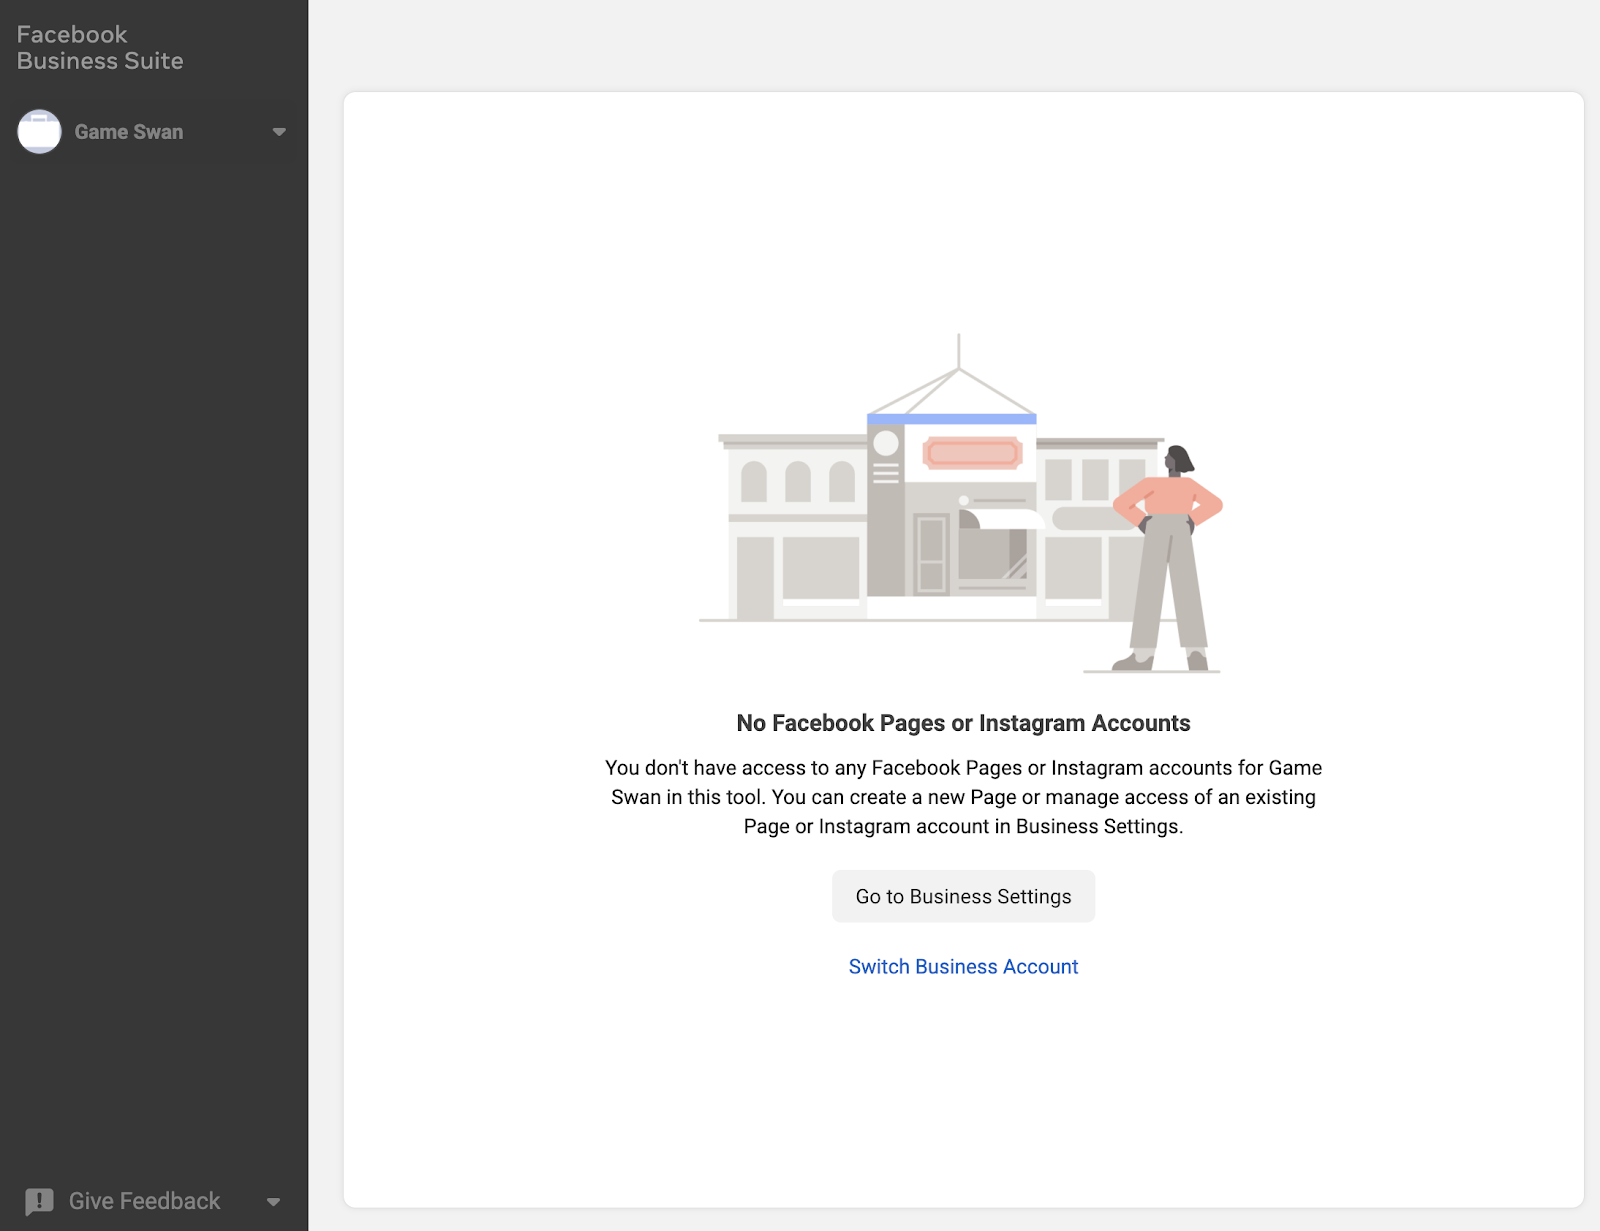 Facebook Business suite load page